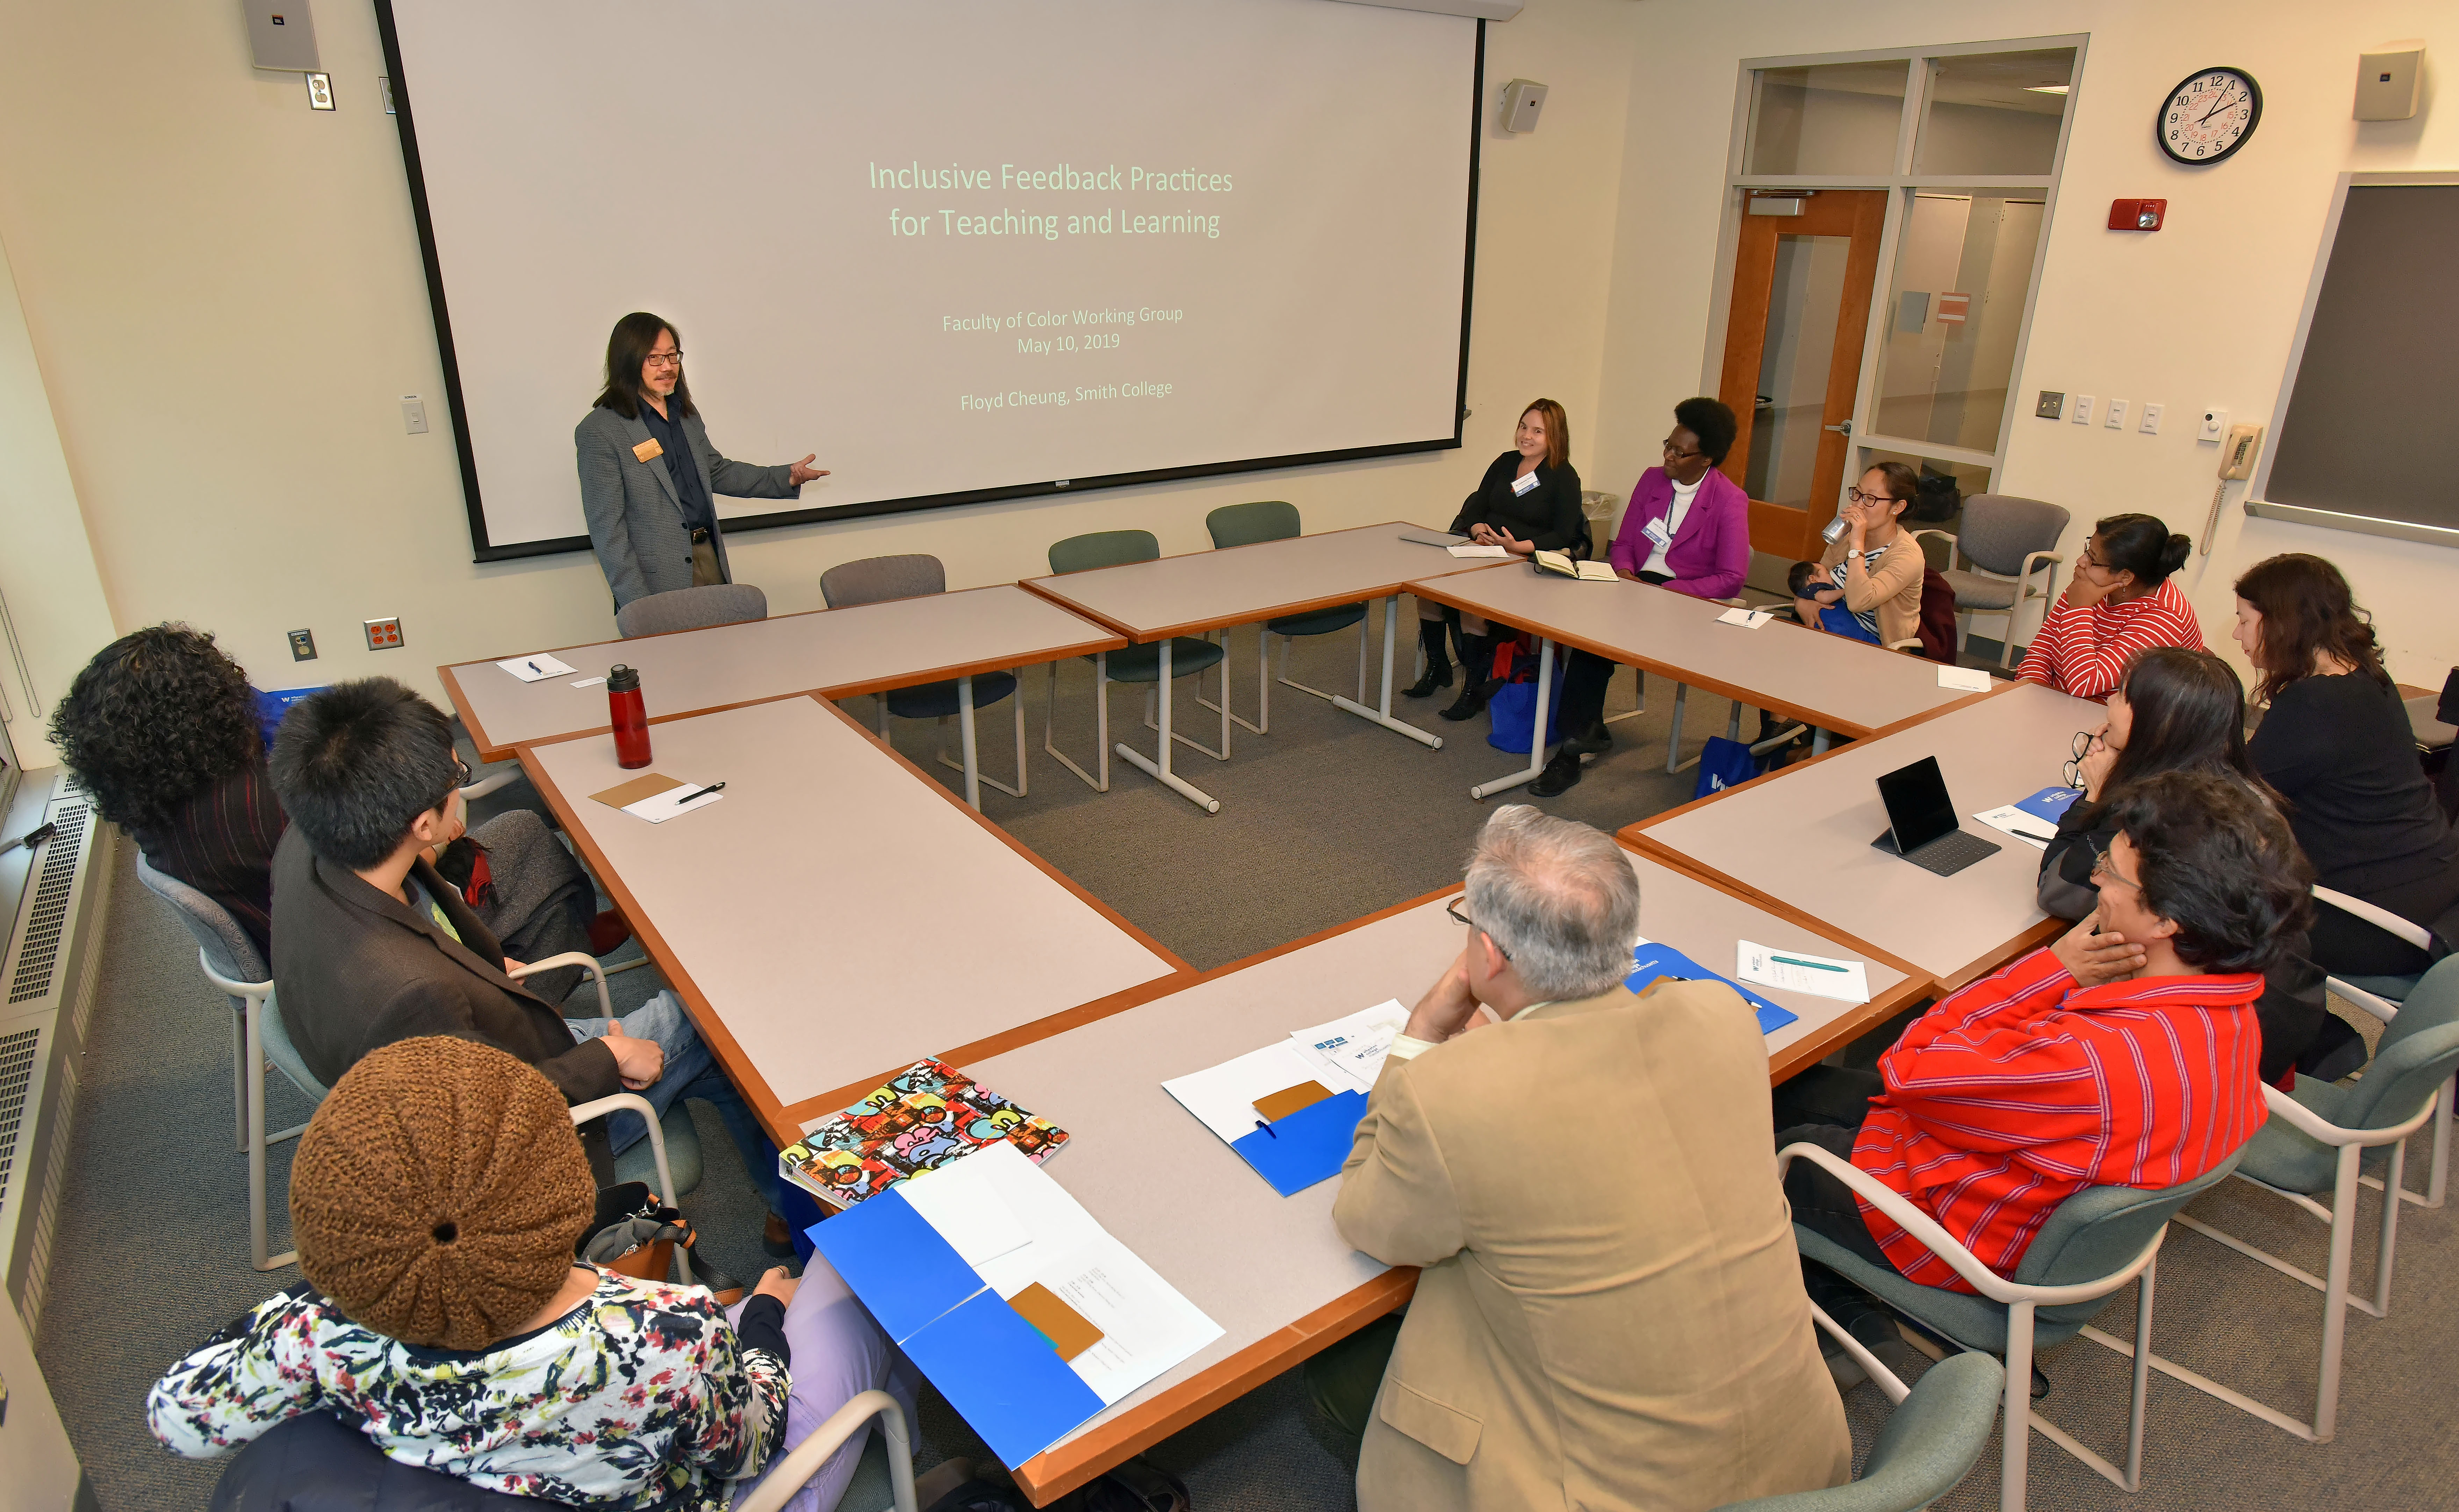 Faculty of Color Working Group Inaugural Symposium